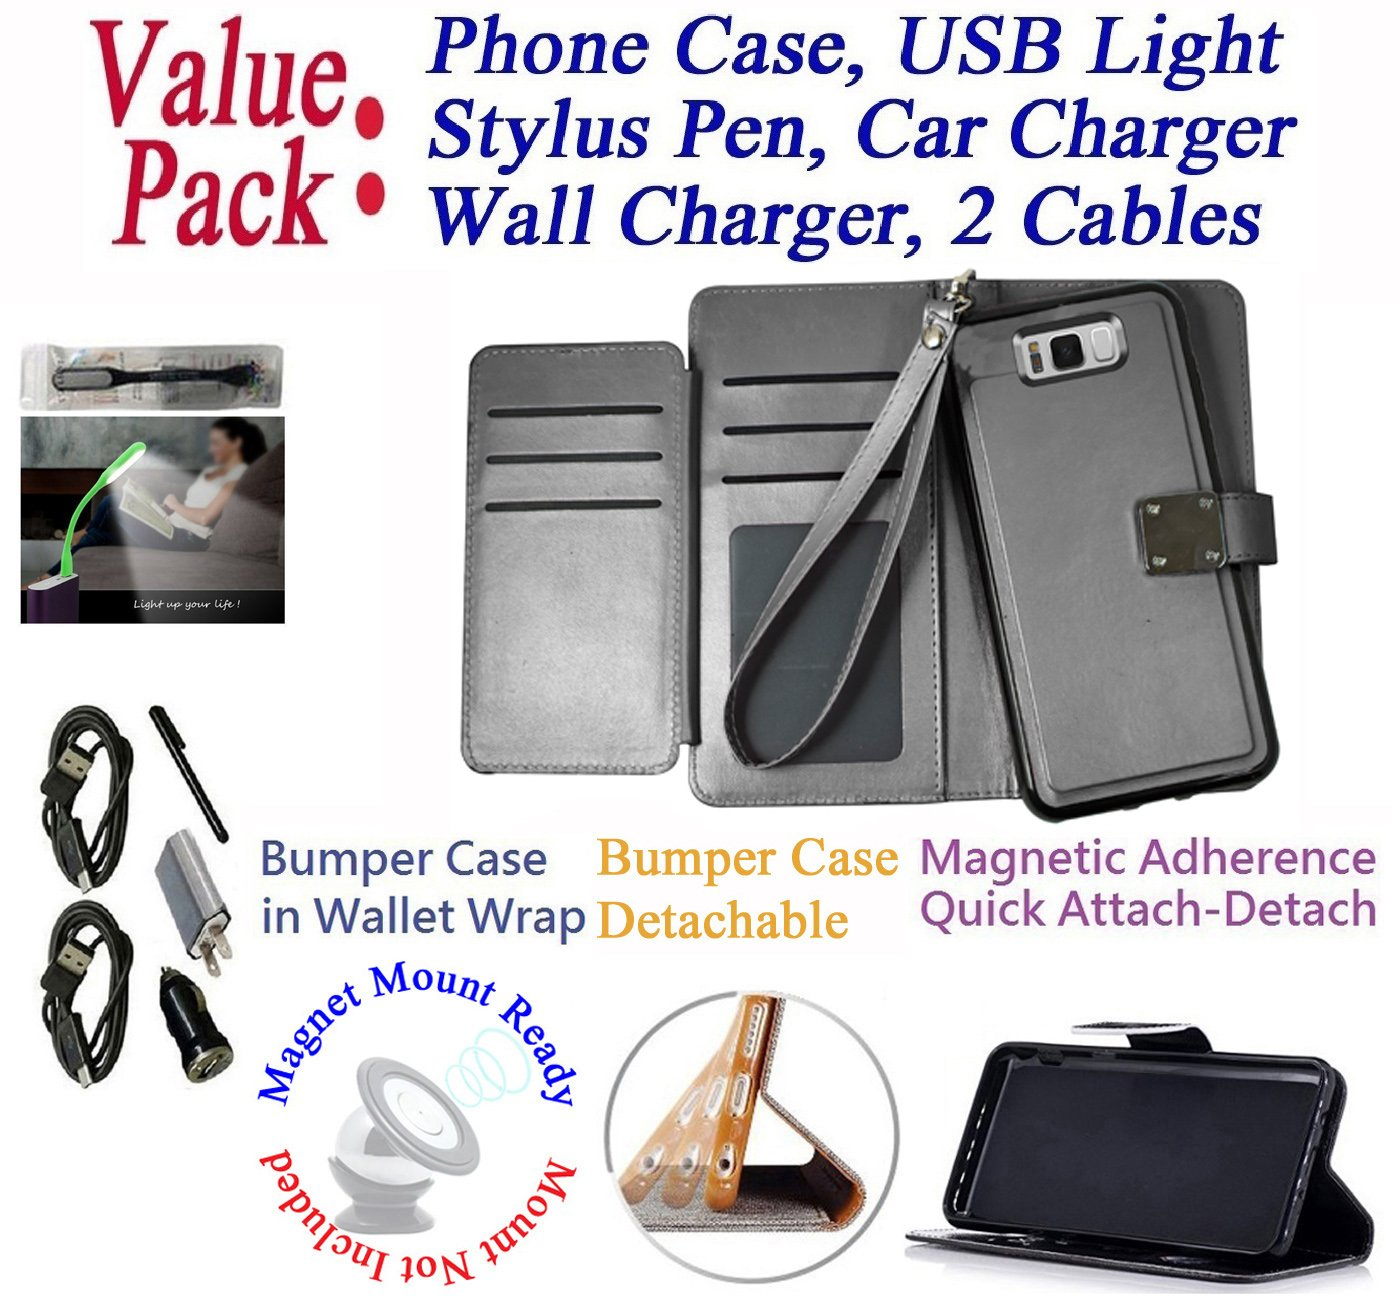 Value Pack + for 6.2'' Samsung Galaxy S8 + PLUS Case Wallet Phone Case Tortilla Cover Detachable Bumper Mag Mount Ready Extra Pocket Purse (Black)